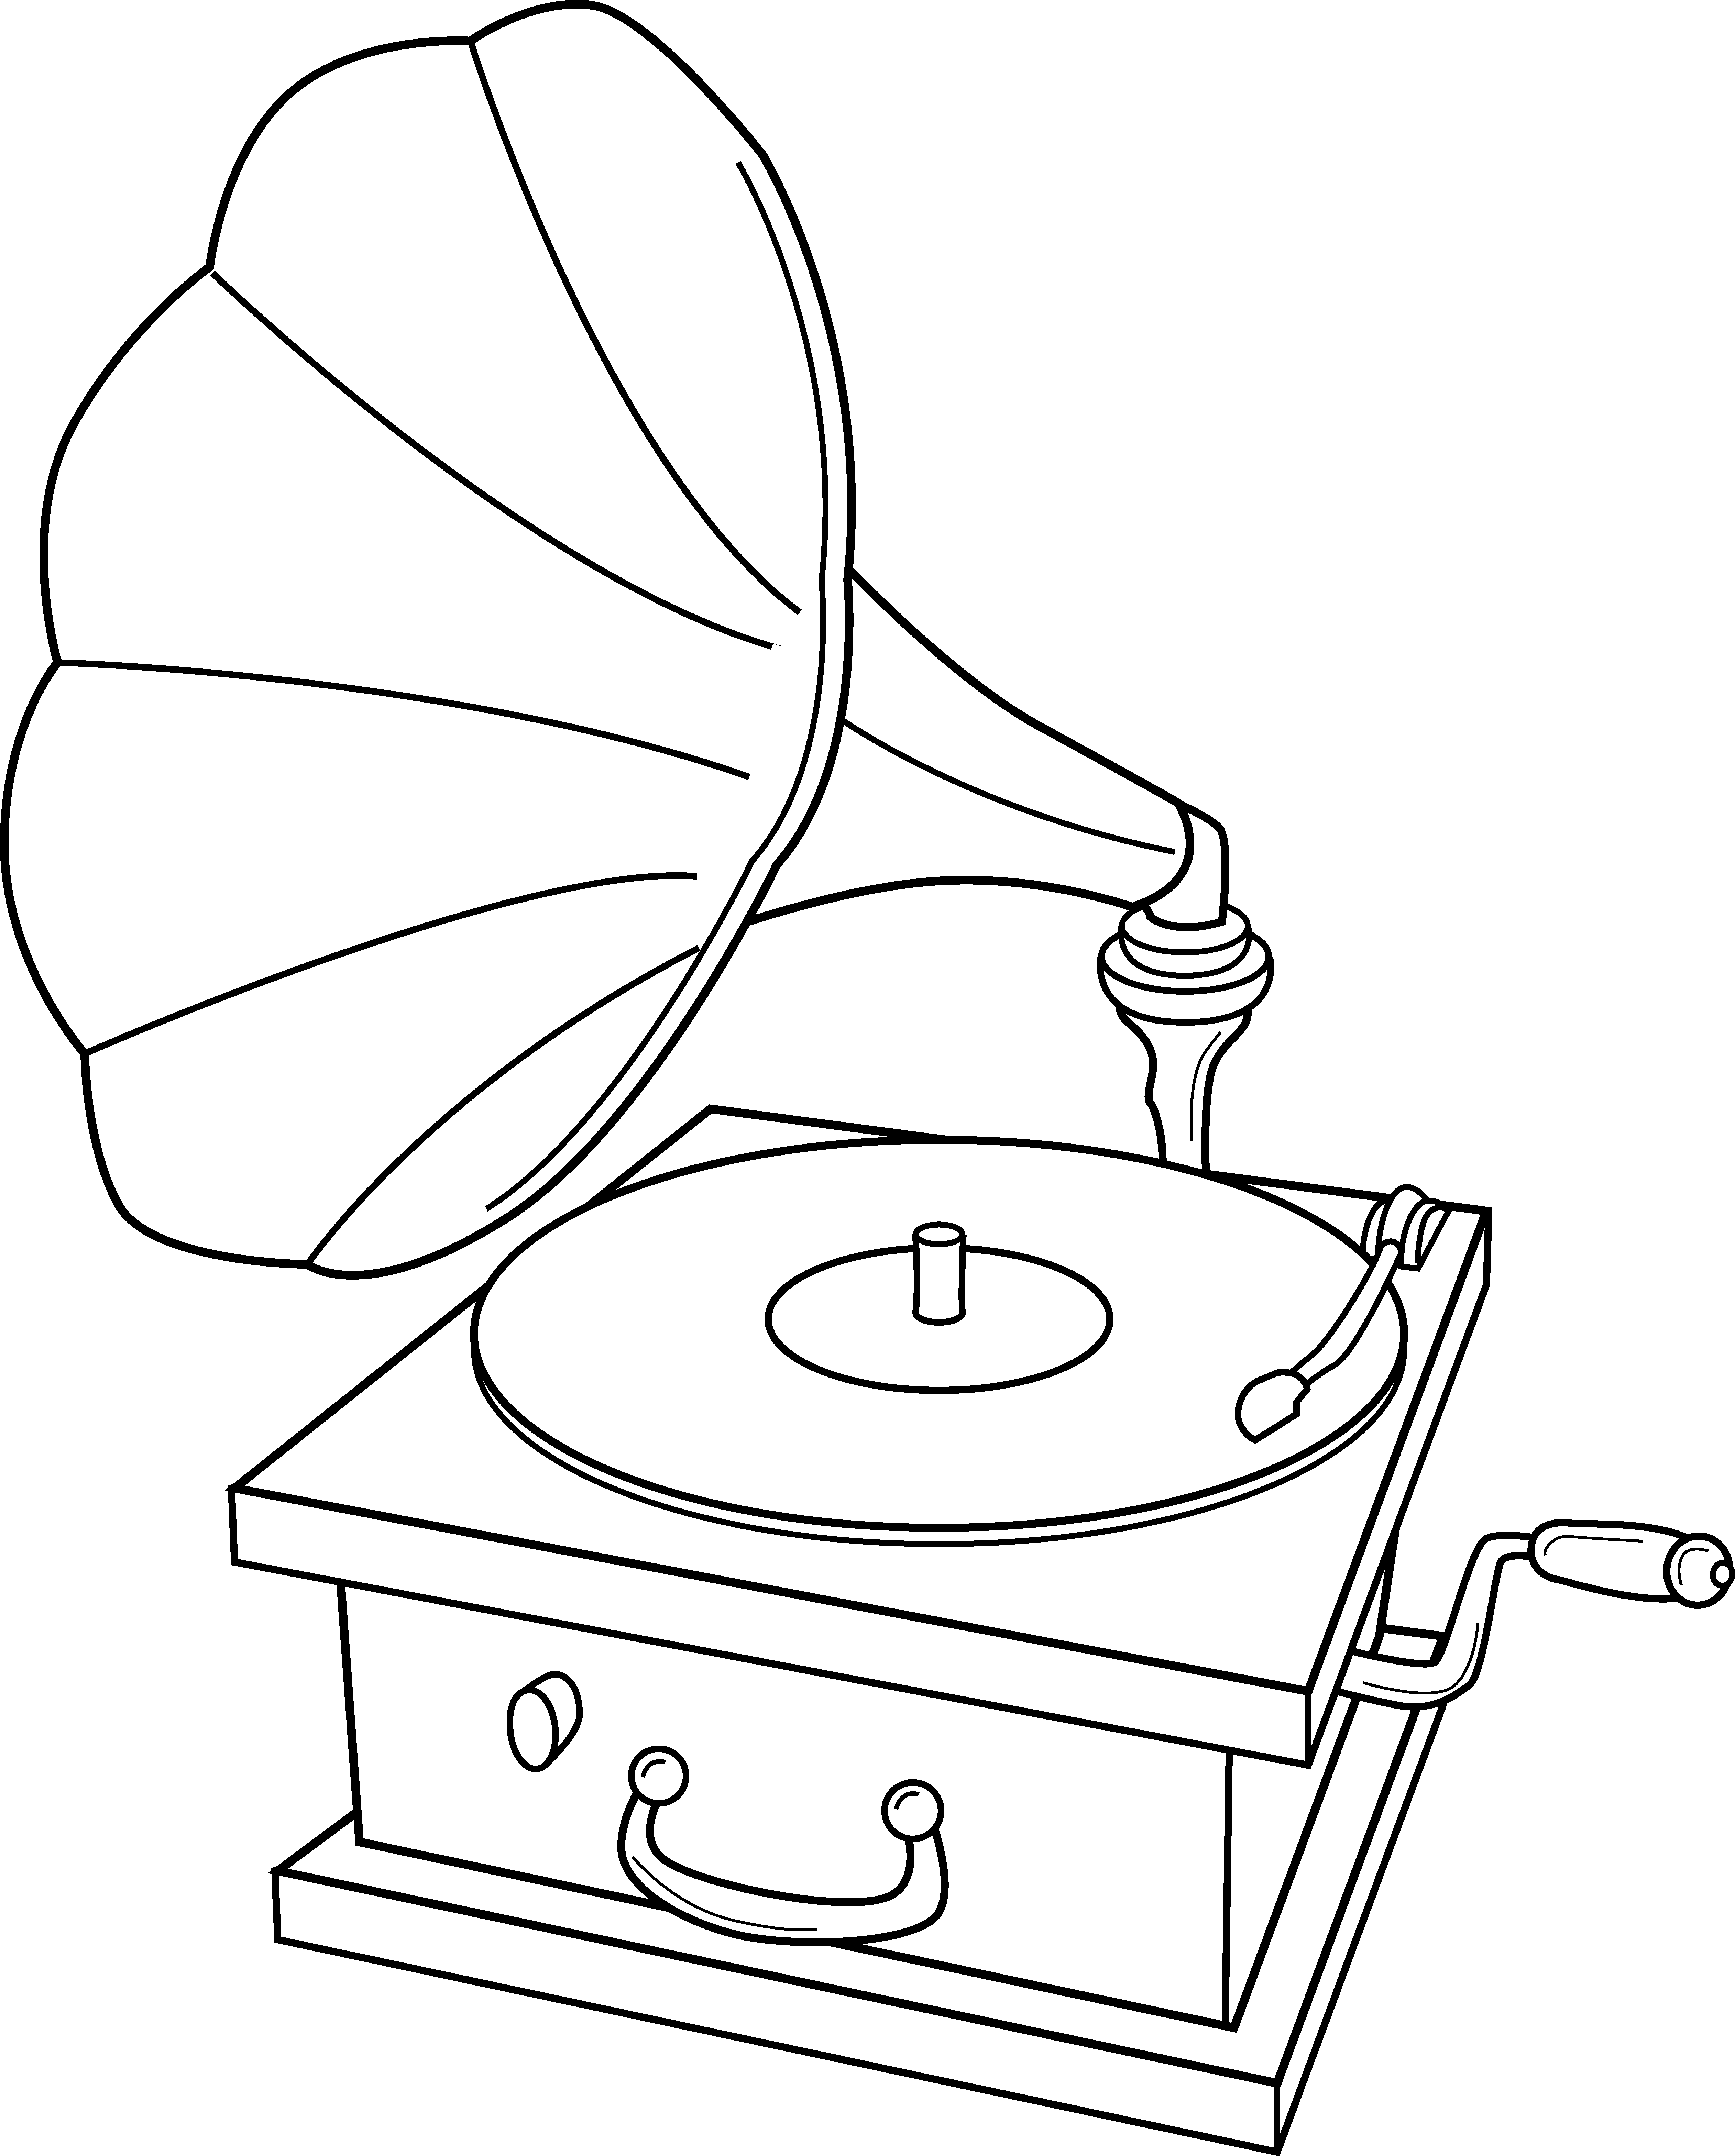 Record Player Coloring Page.